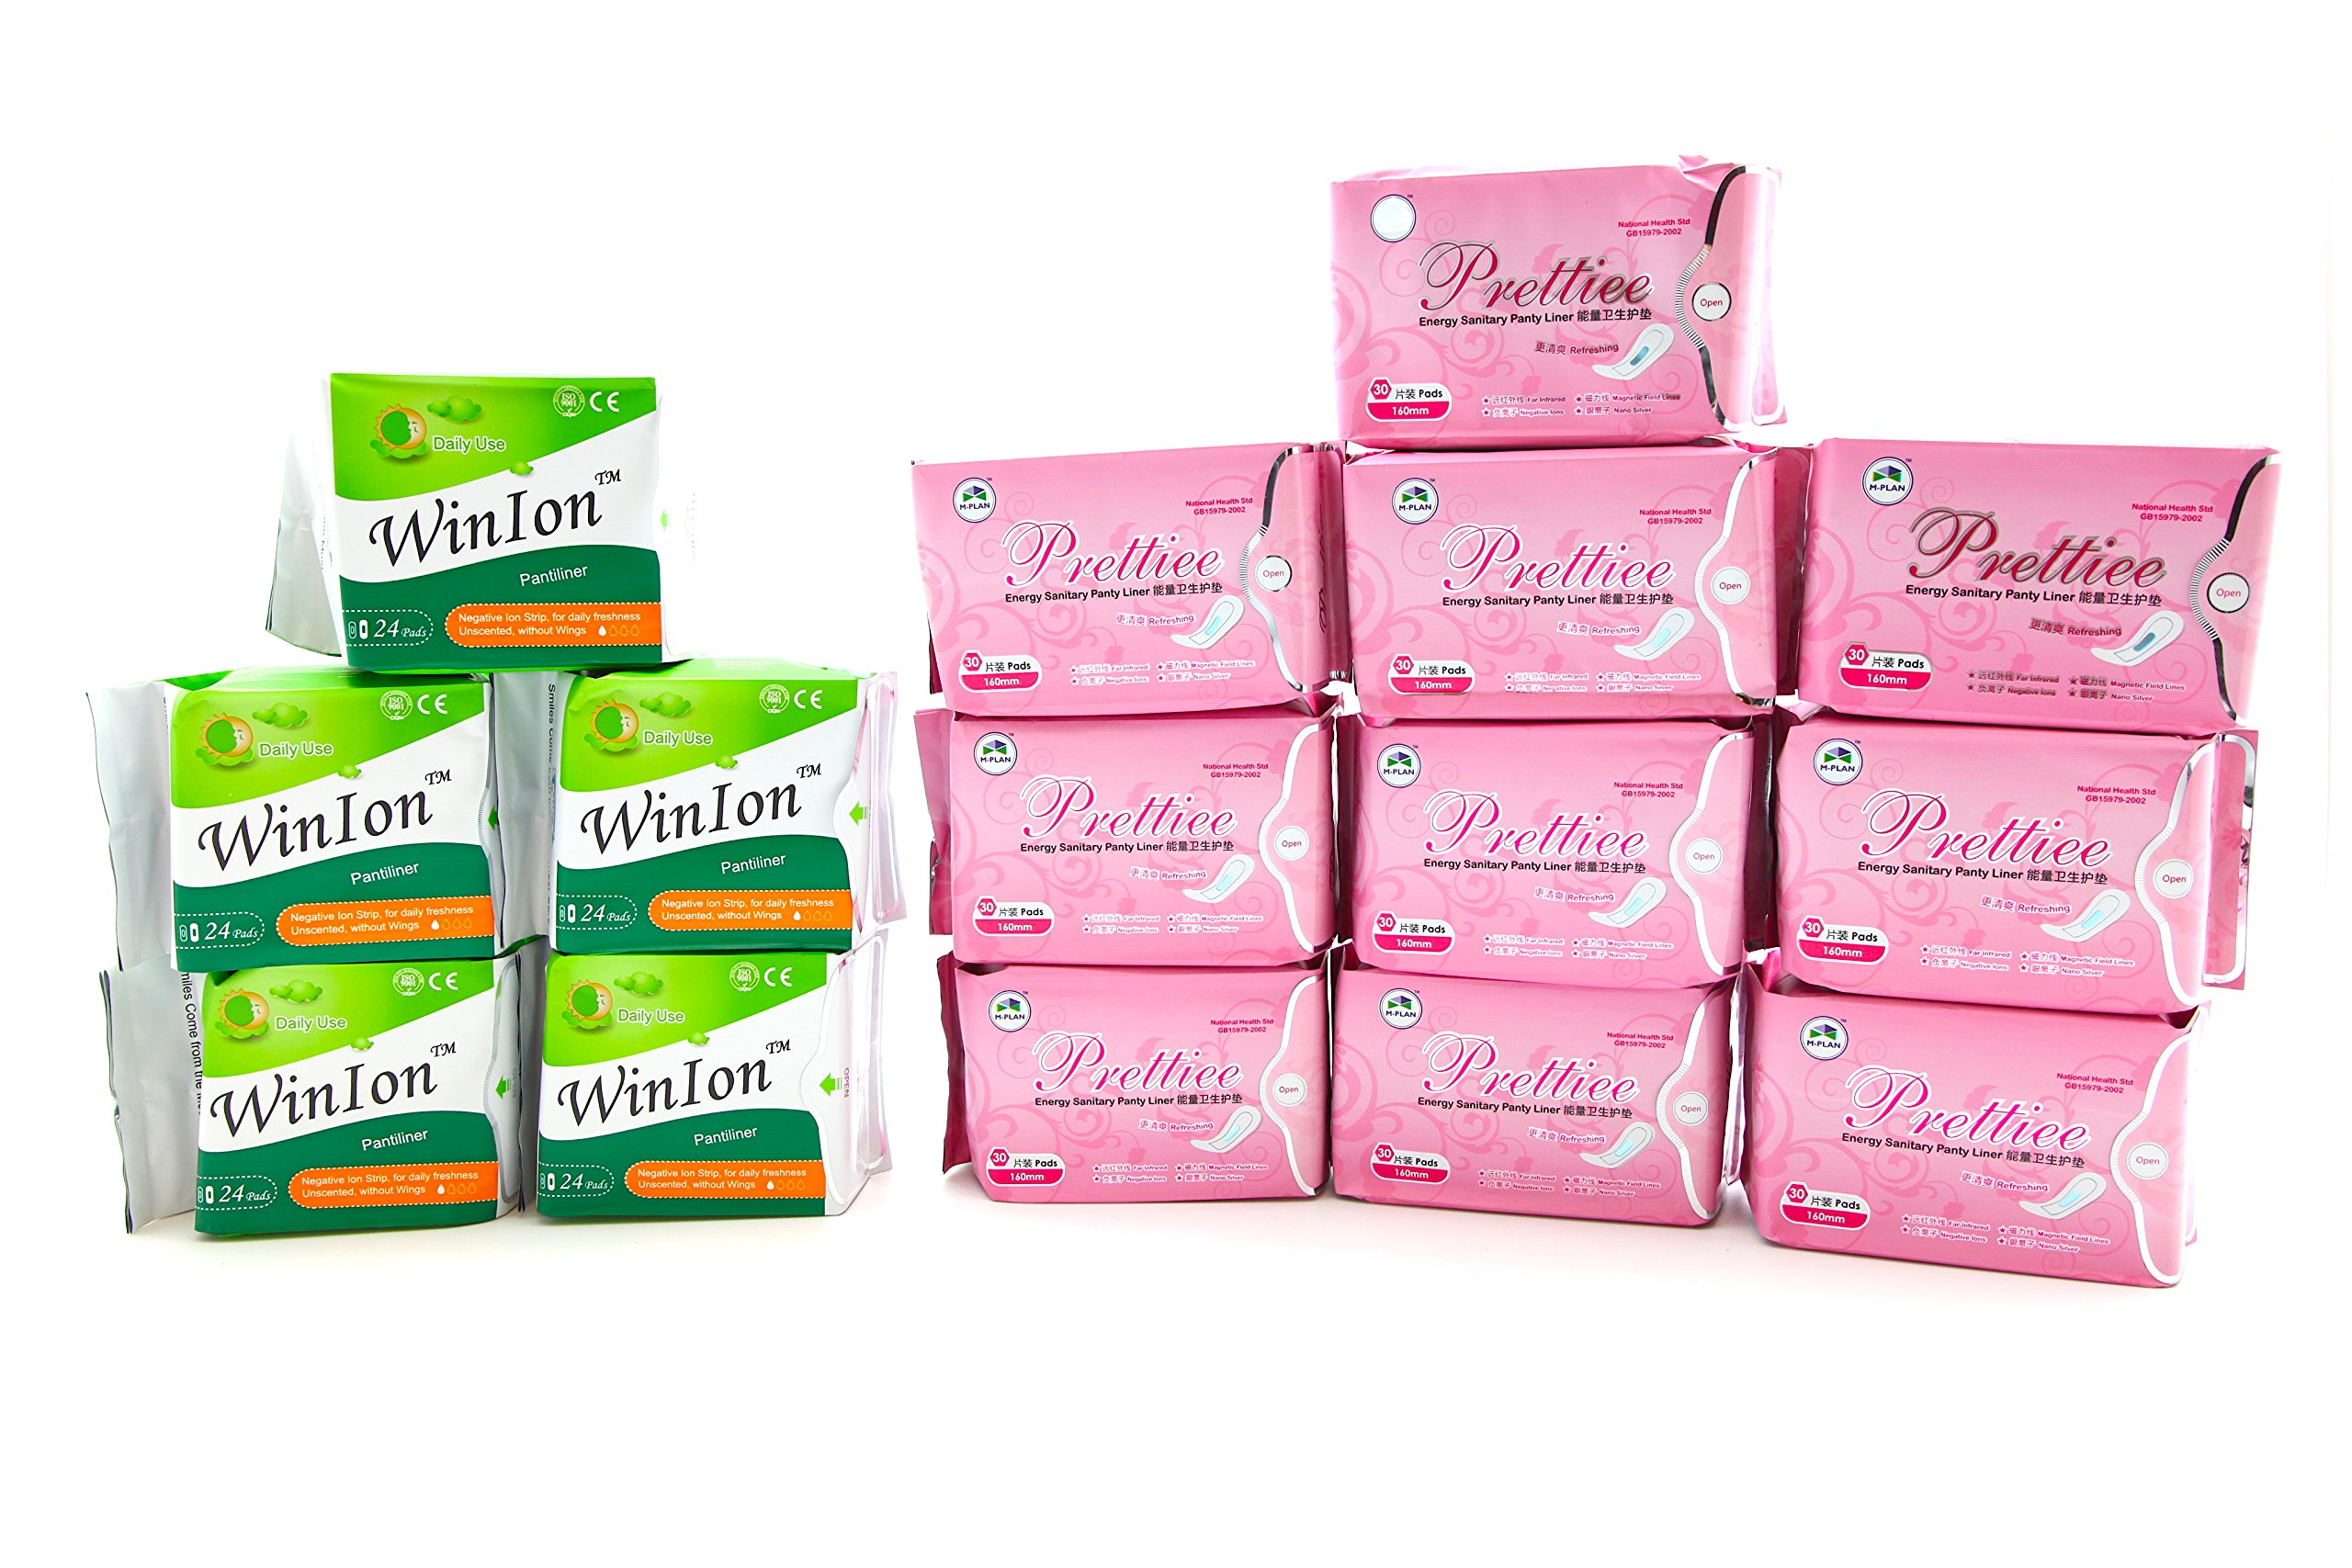 5 Pack Winalite Winion Anion Pantiliner With 10 Pack Prettie Energy Sanitary Panty Liner by Winalite (Image #1)